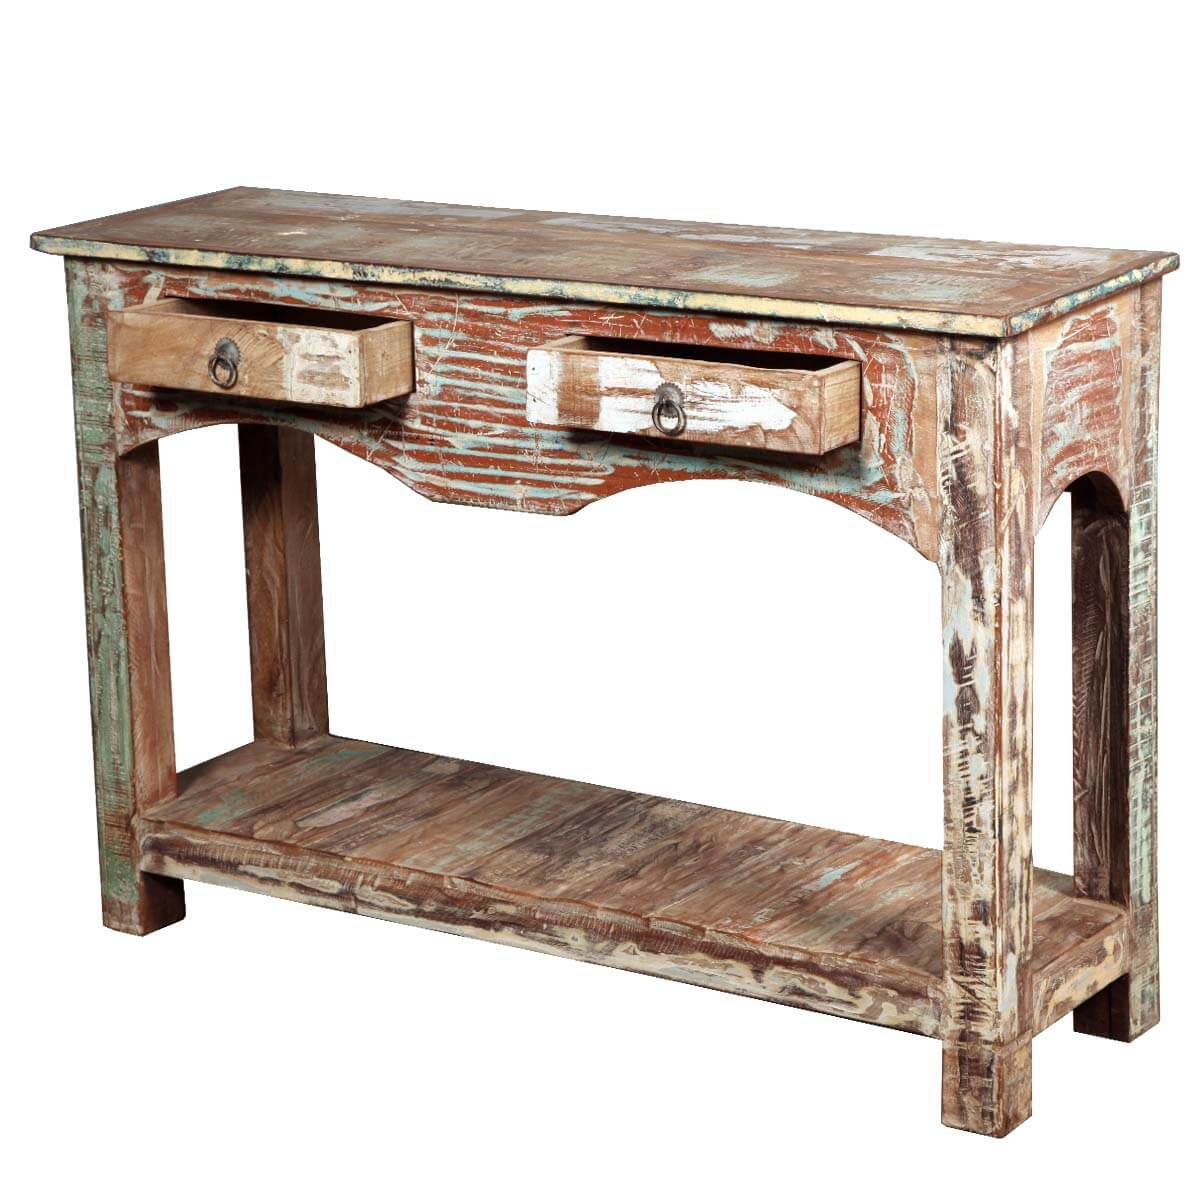 Distressed reclaimed wood drawer console hall table